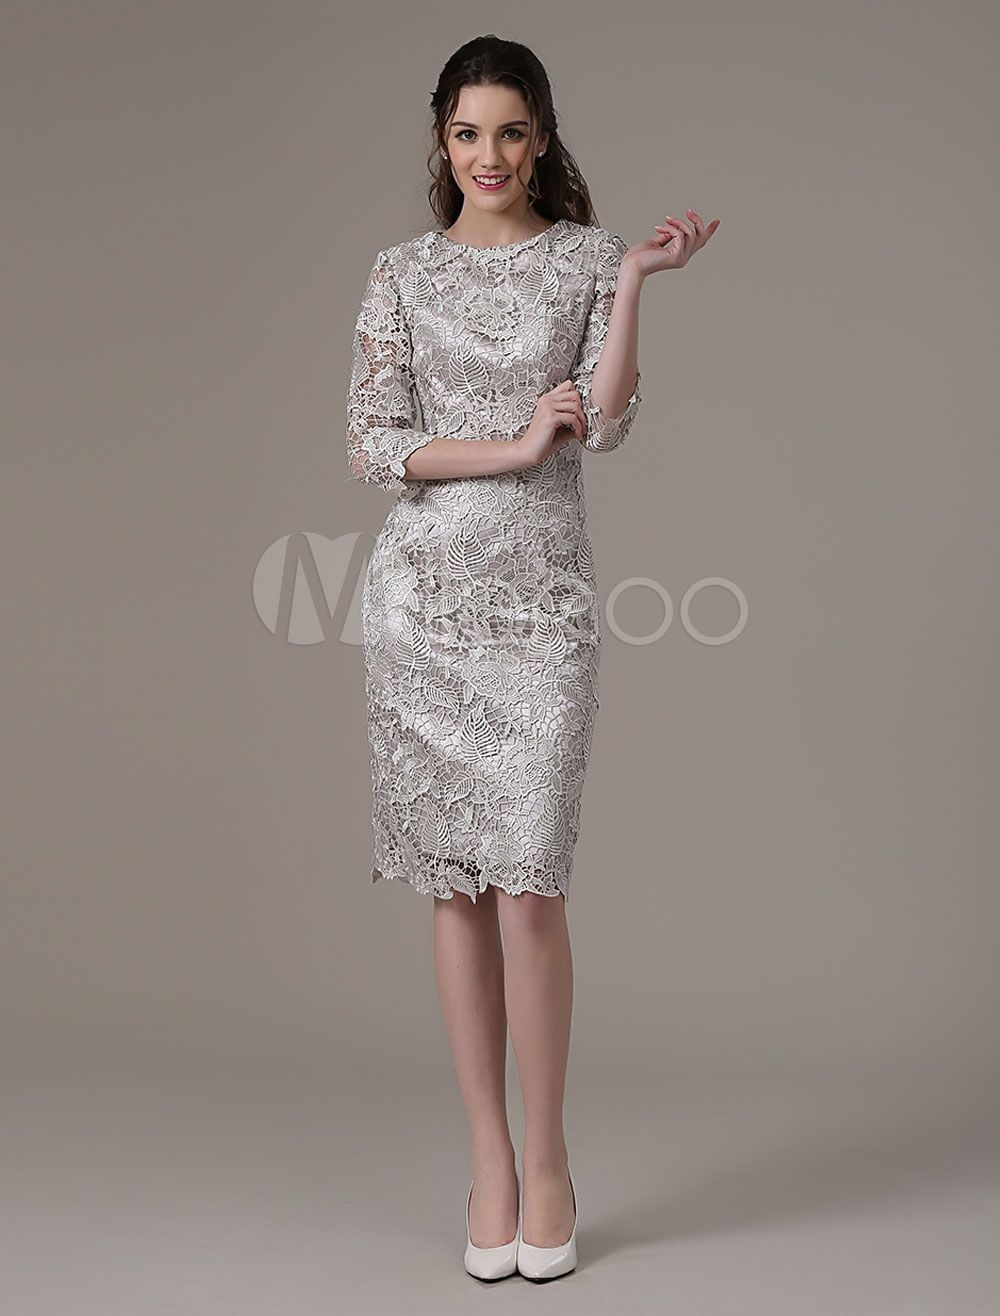 Wedding Guest Dresses Silver Lace Mother Dress Short Half Sleeve Sheath Cocktail Dress Wedding Guest Dress Silver Cocktail Dress Cocktail Dress Wedding Cocktail Dresses With Sleeves